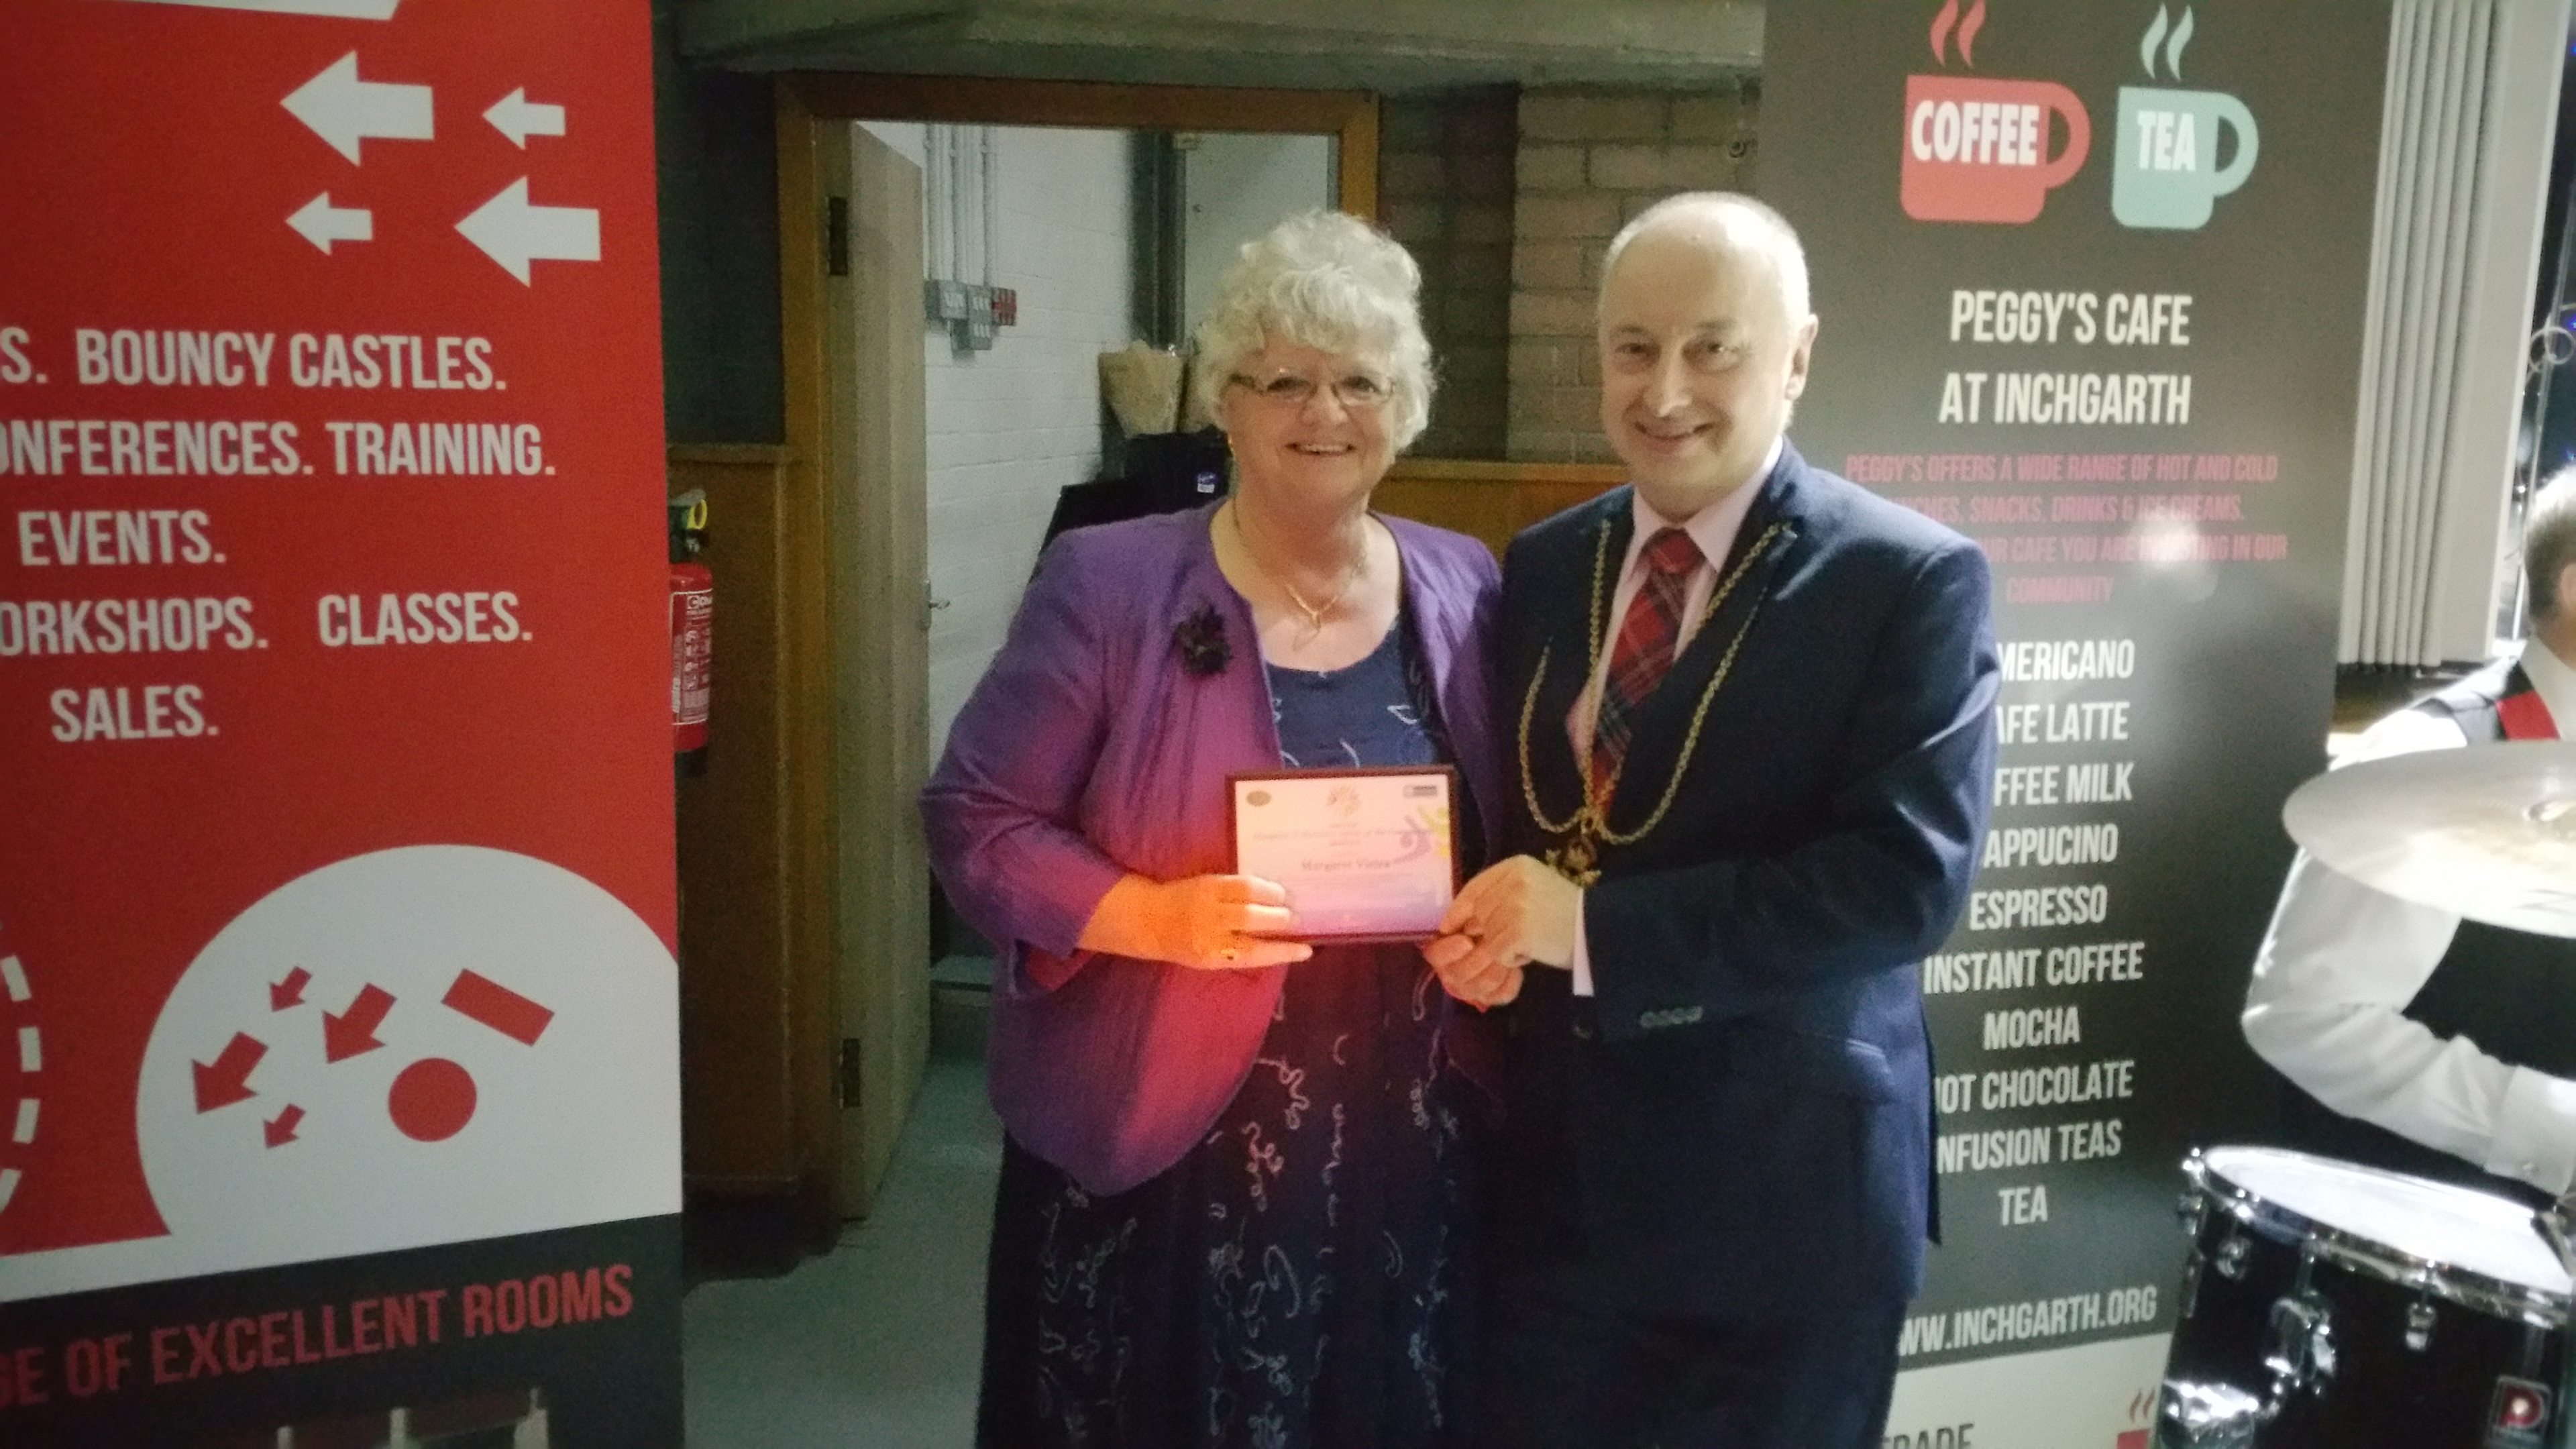 Margaret Viera being honoured for her service to charity, the arts and the community,  with Lord Provost George Adam at last year's event.